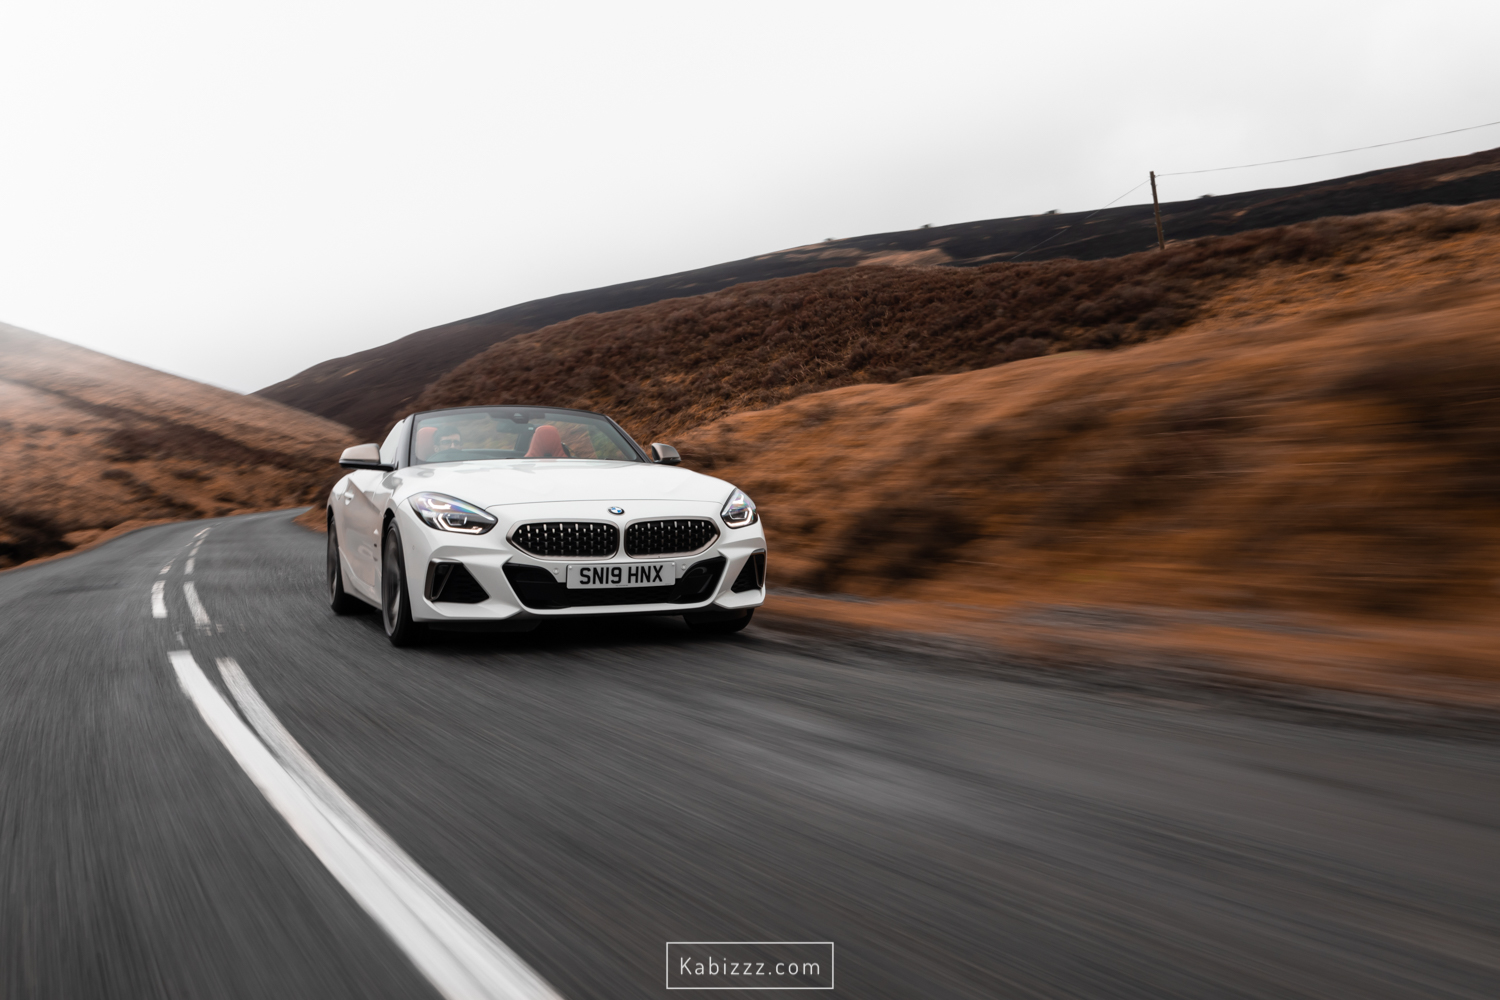 2019_bmw_z4_m40i_automotivephotography_kabizzz-2.jpg